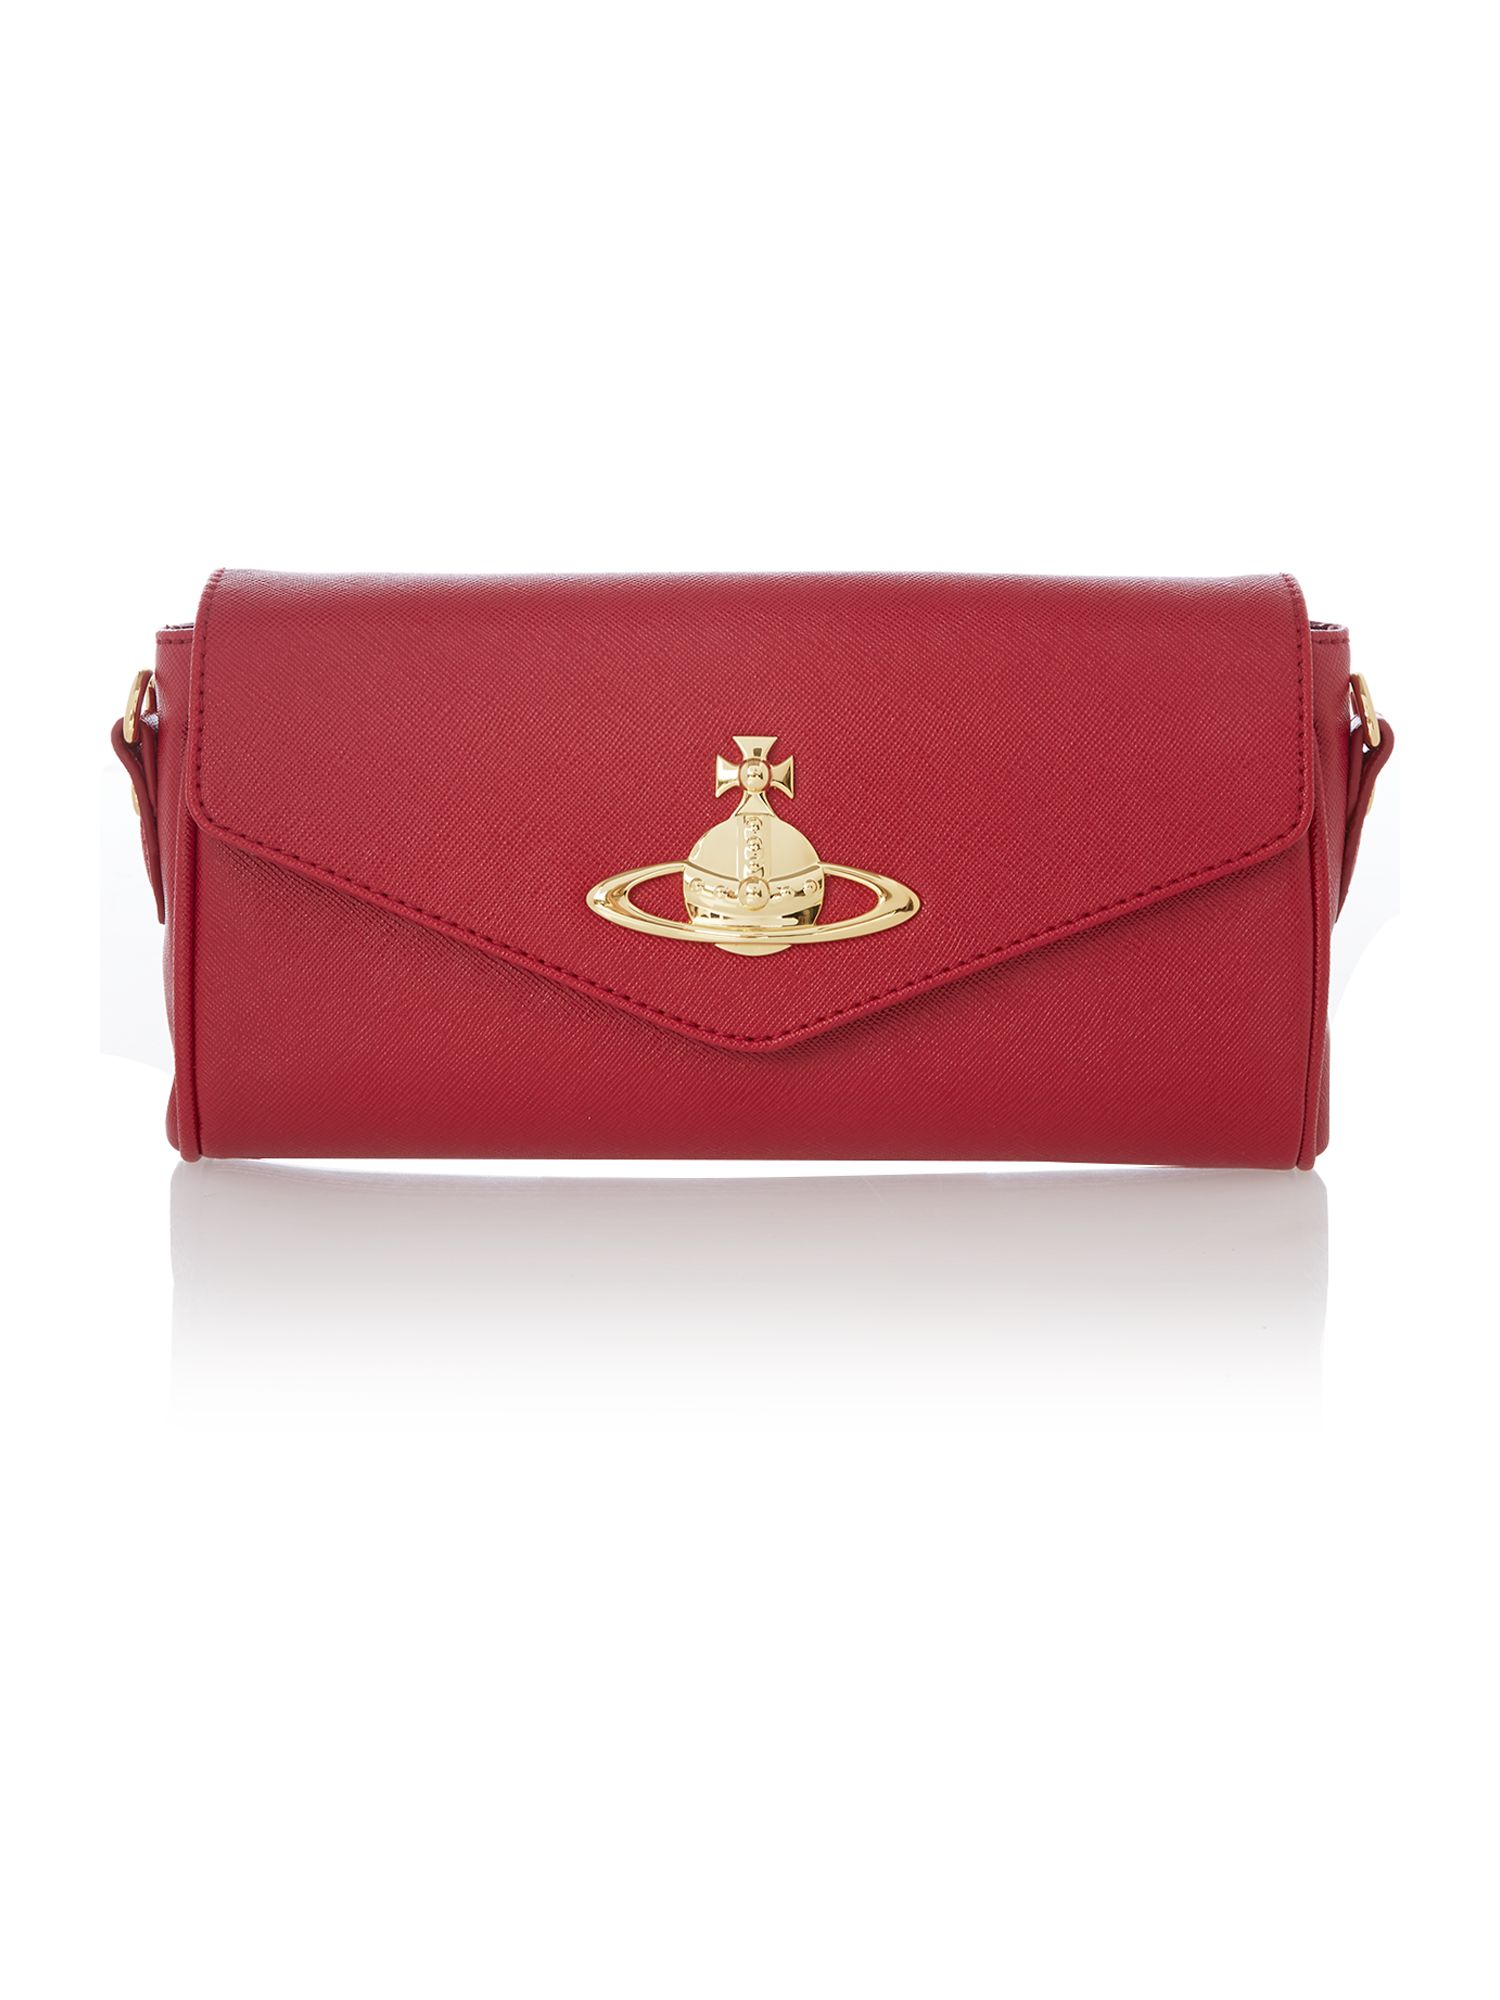 Divina red small flapover cross body bag